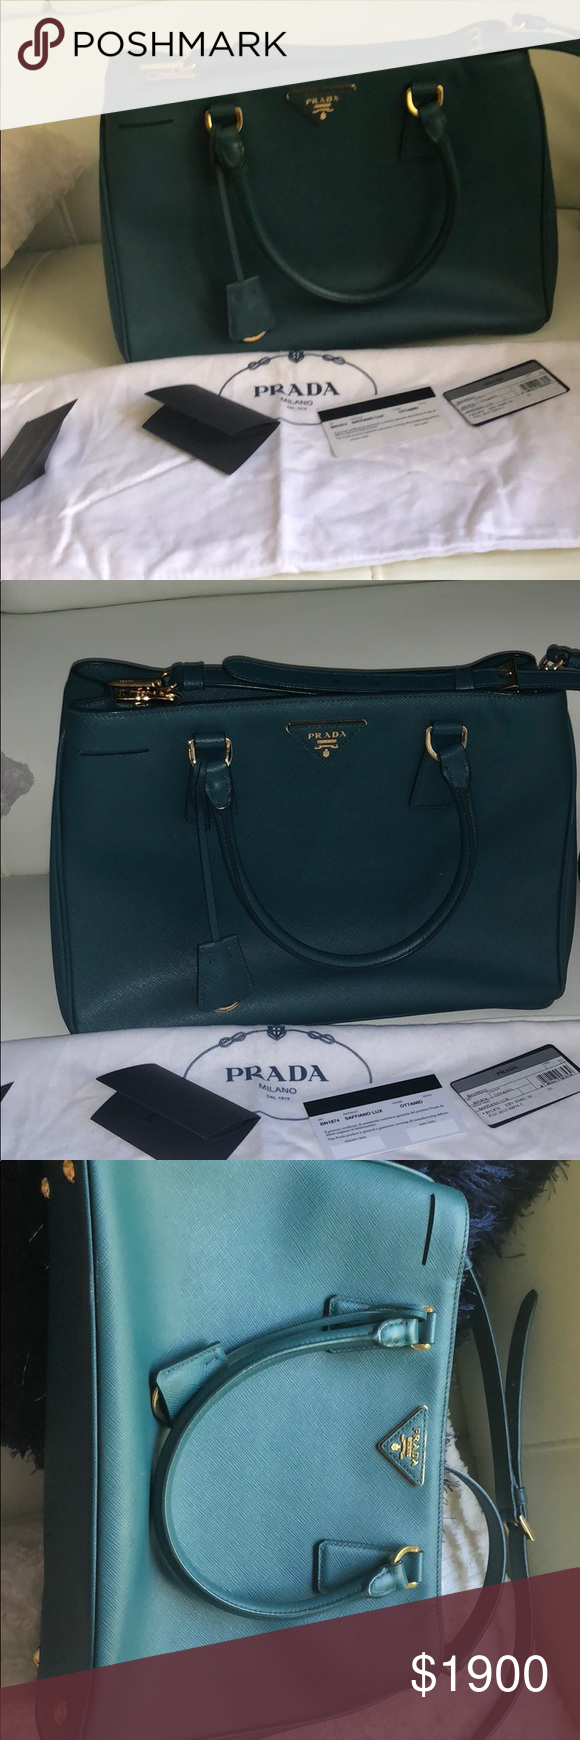 d6546dbb3b4 Authenthic prada saffiano lux bag Used but in great condition Comes with  dust bag Authenticity card Color is a burgundy wine color Bags Shoulder Bags